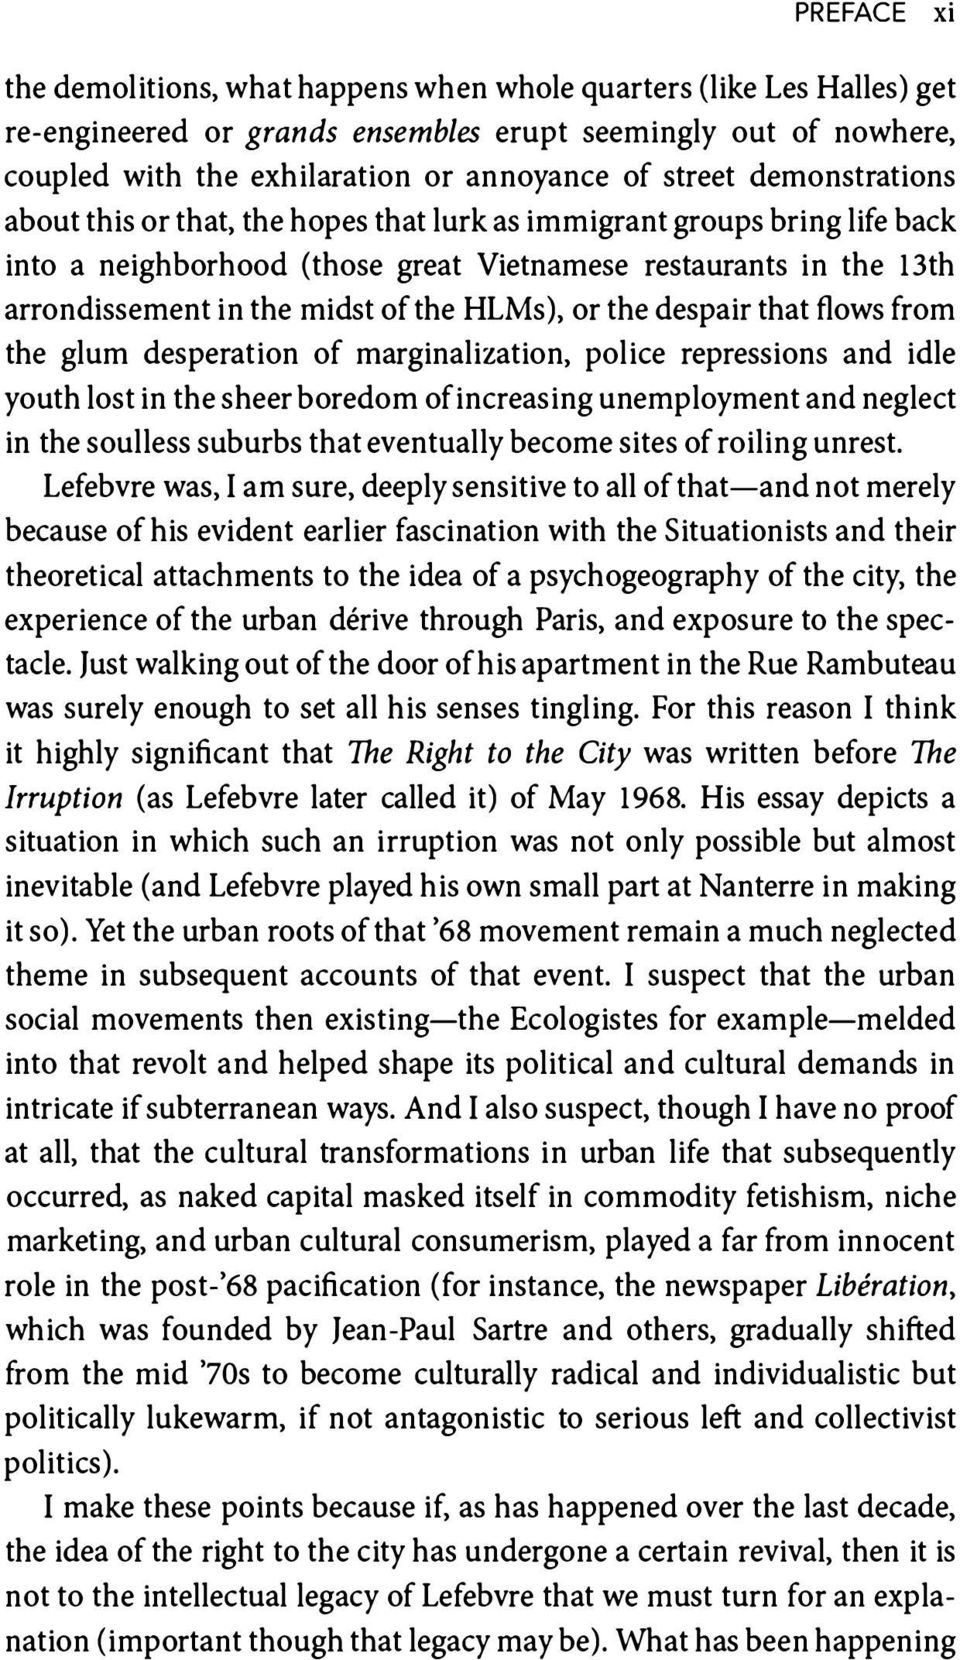 the HLMs), or the despair that flows from the glum desperation of marginalization, police repressions and idle youth lost in the sheer boredom of increasing unemployment and neglect in the soulless